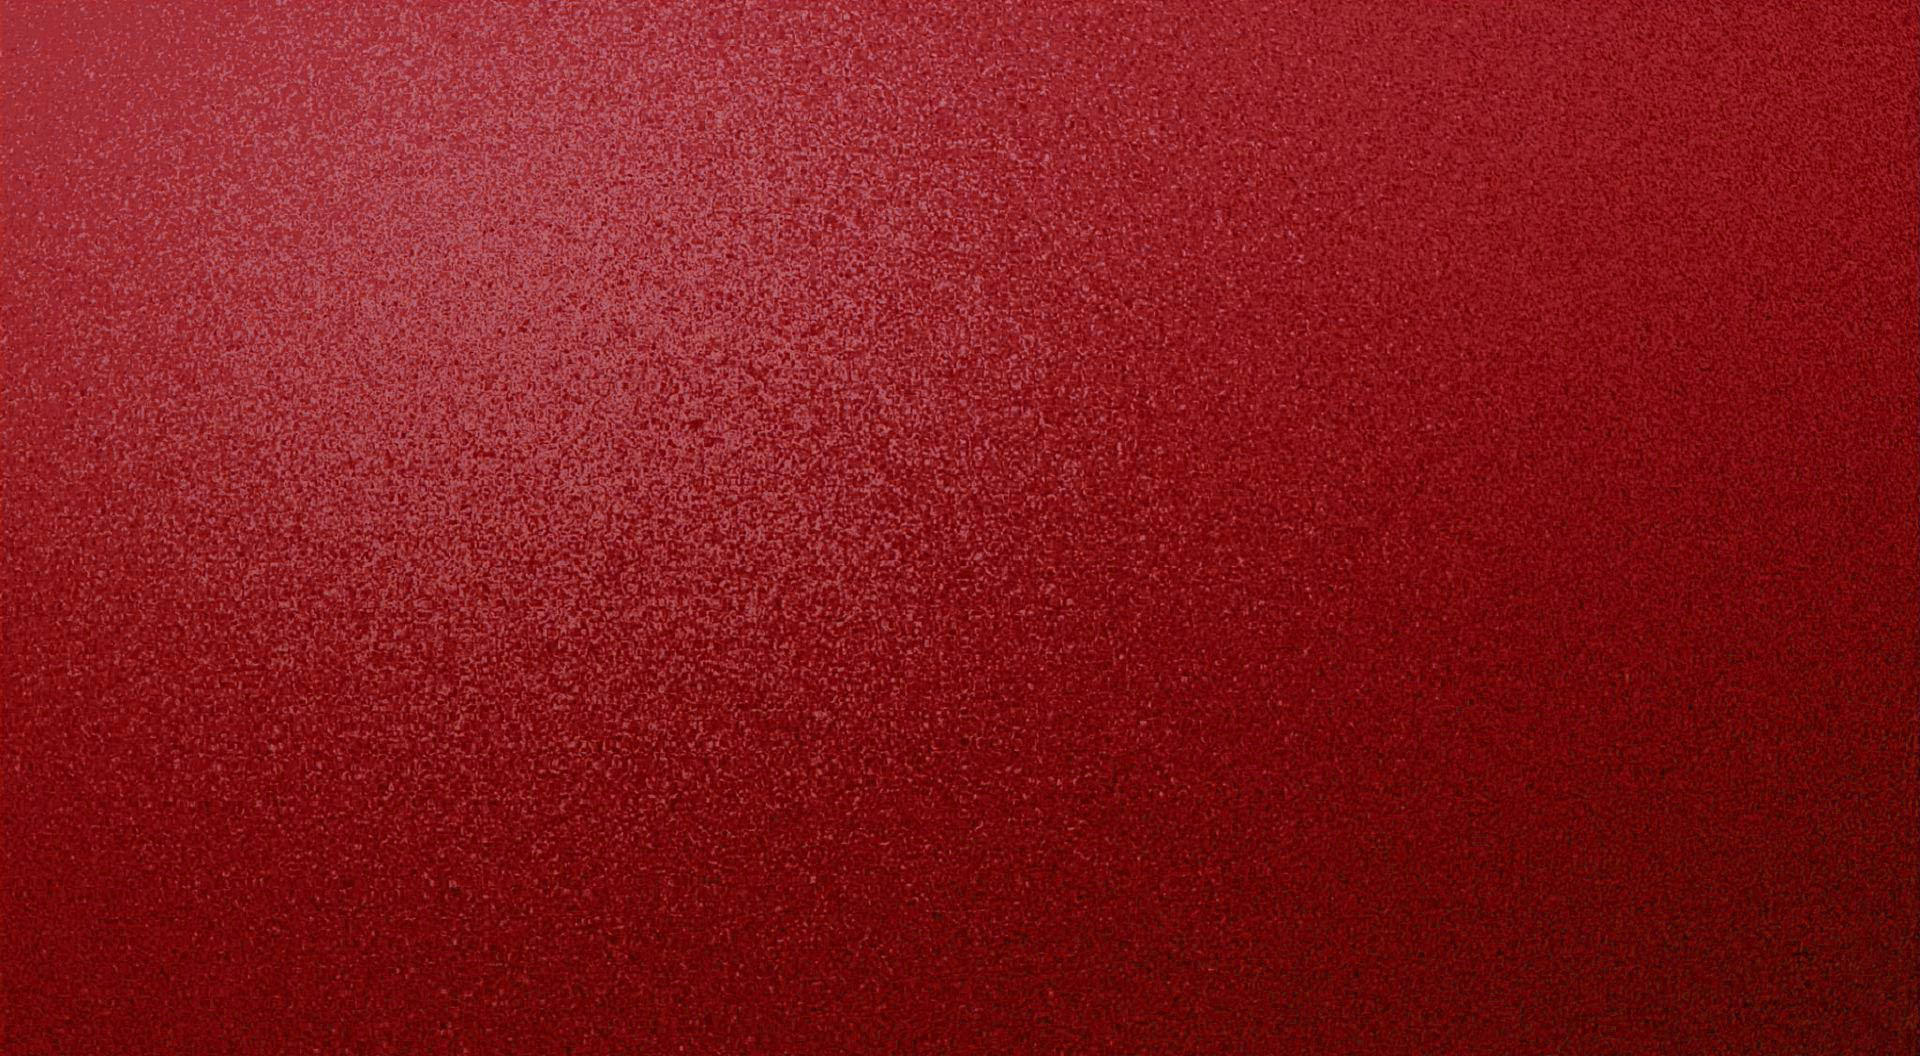 Red-textured-speckled-desktop-background-wallpaper-for-use-with-mac